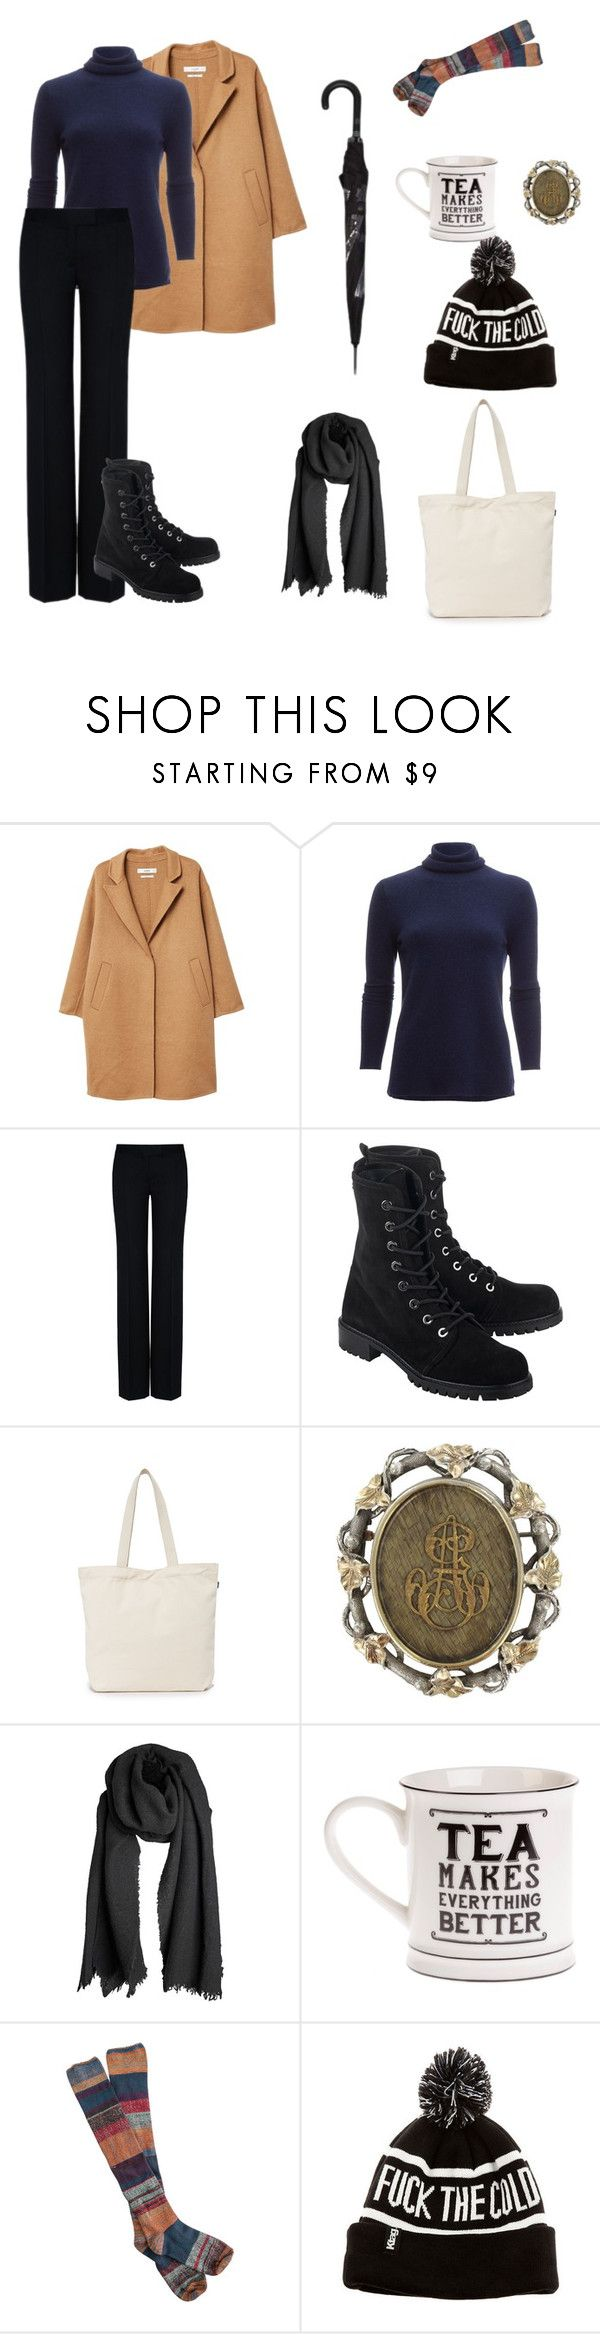 """Adventuring With The Bae"" by padfoot31902 ❤ liked on Polyvore featuring MANGO, White + Warren, STELLA McCARTNEY, Stuart Weitzman, BAGGU, Rick Owens, Free People and Jean-Paul Gaultier"